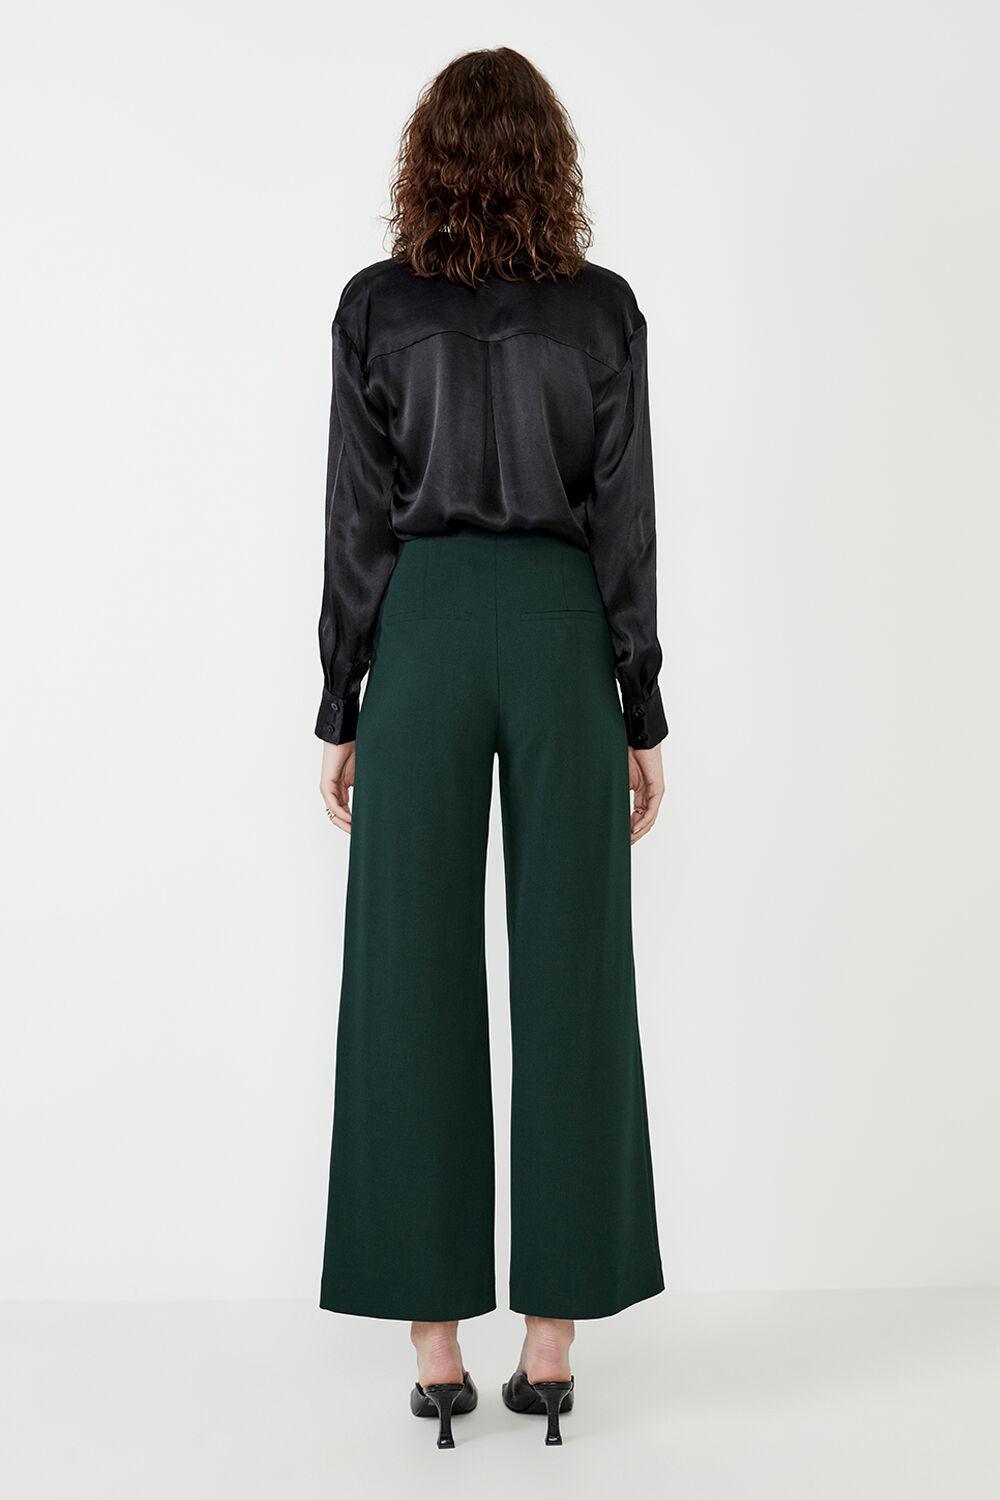 TUCK FRONT TROUSER in colour FOREST GREEN